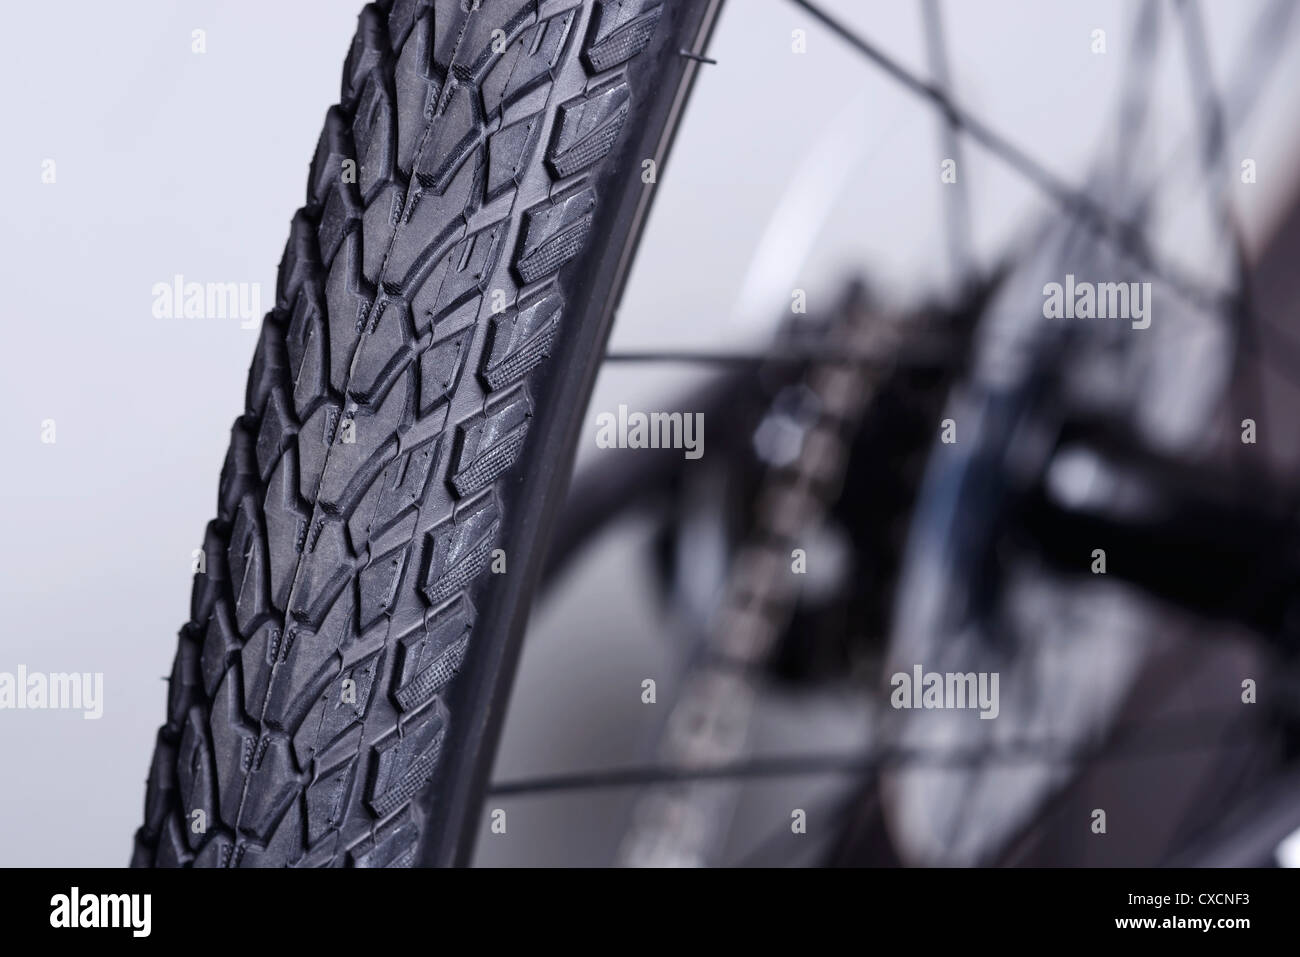 Detail of the rear tyre and wheel of a bicycle - Stock Image